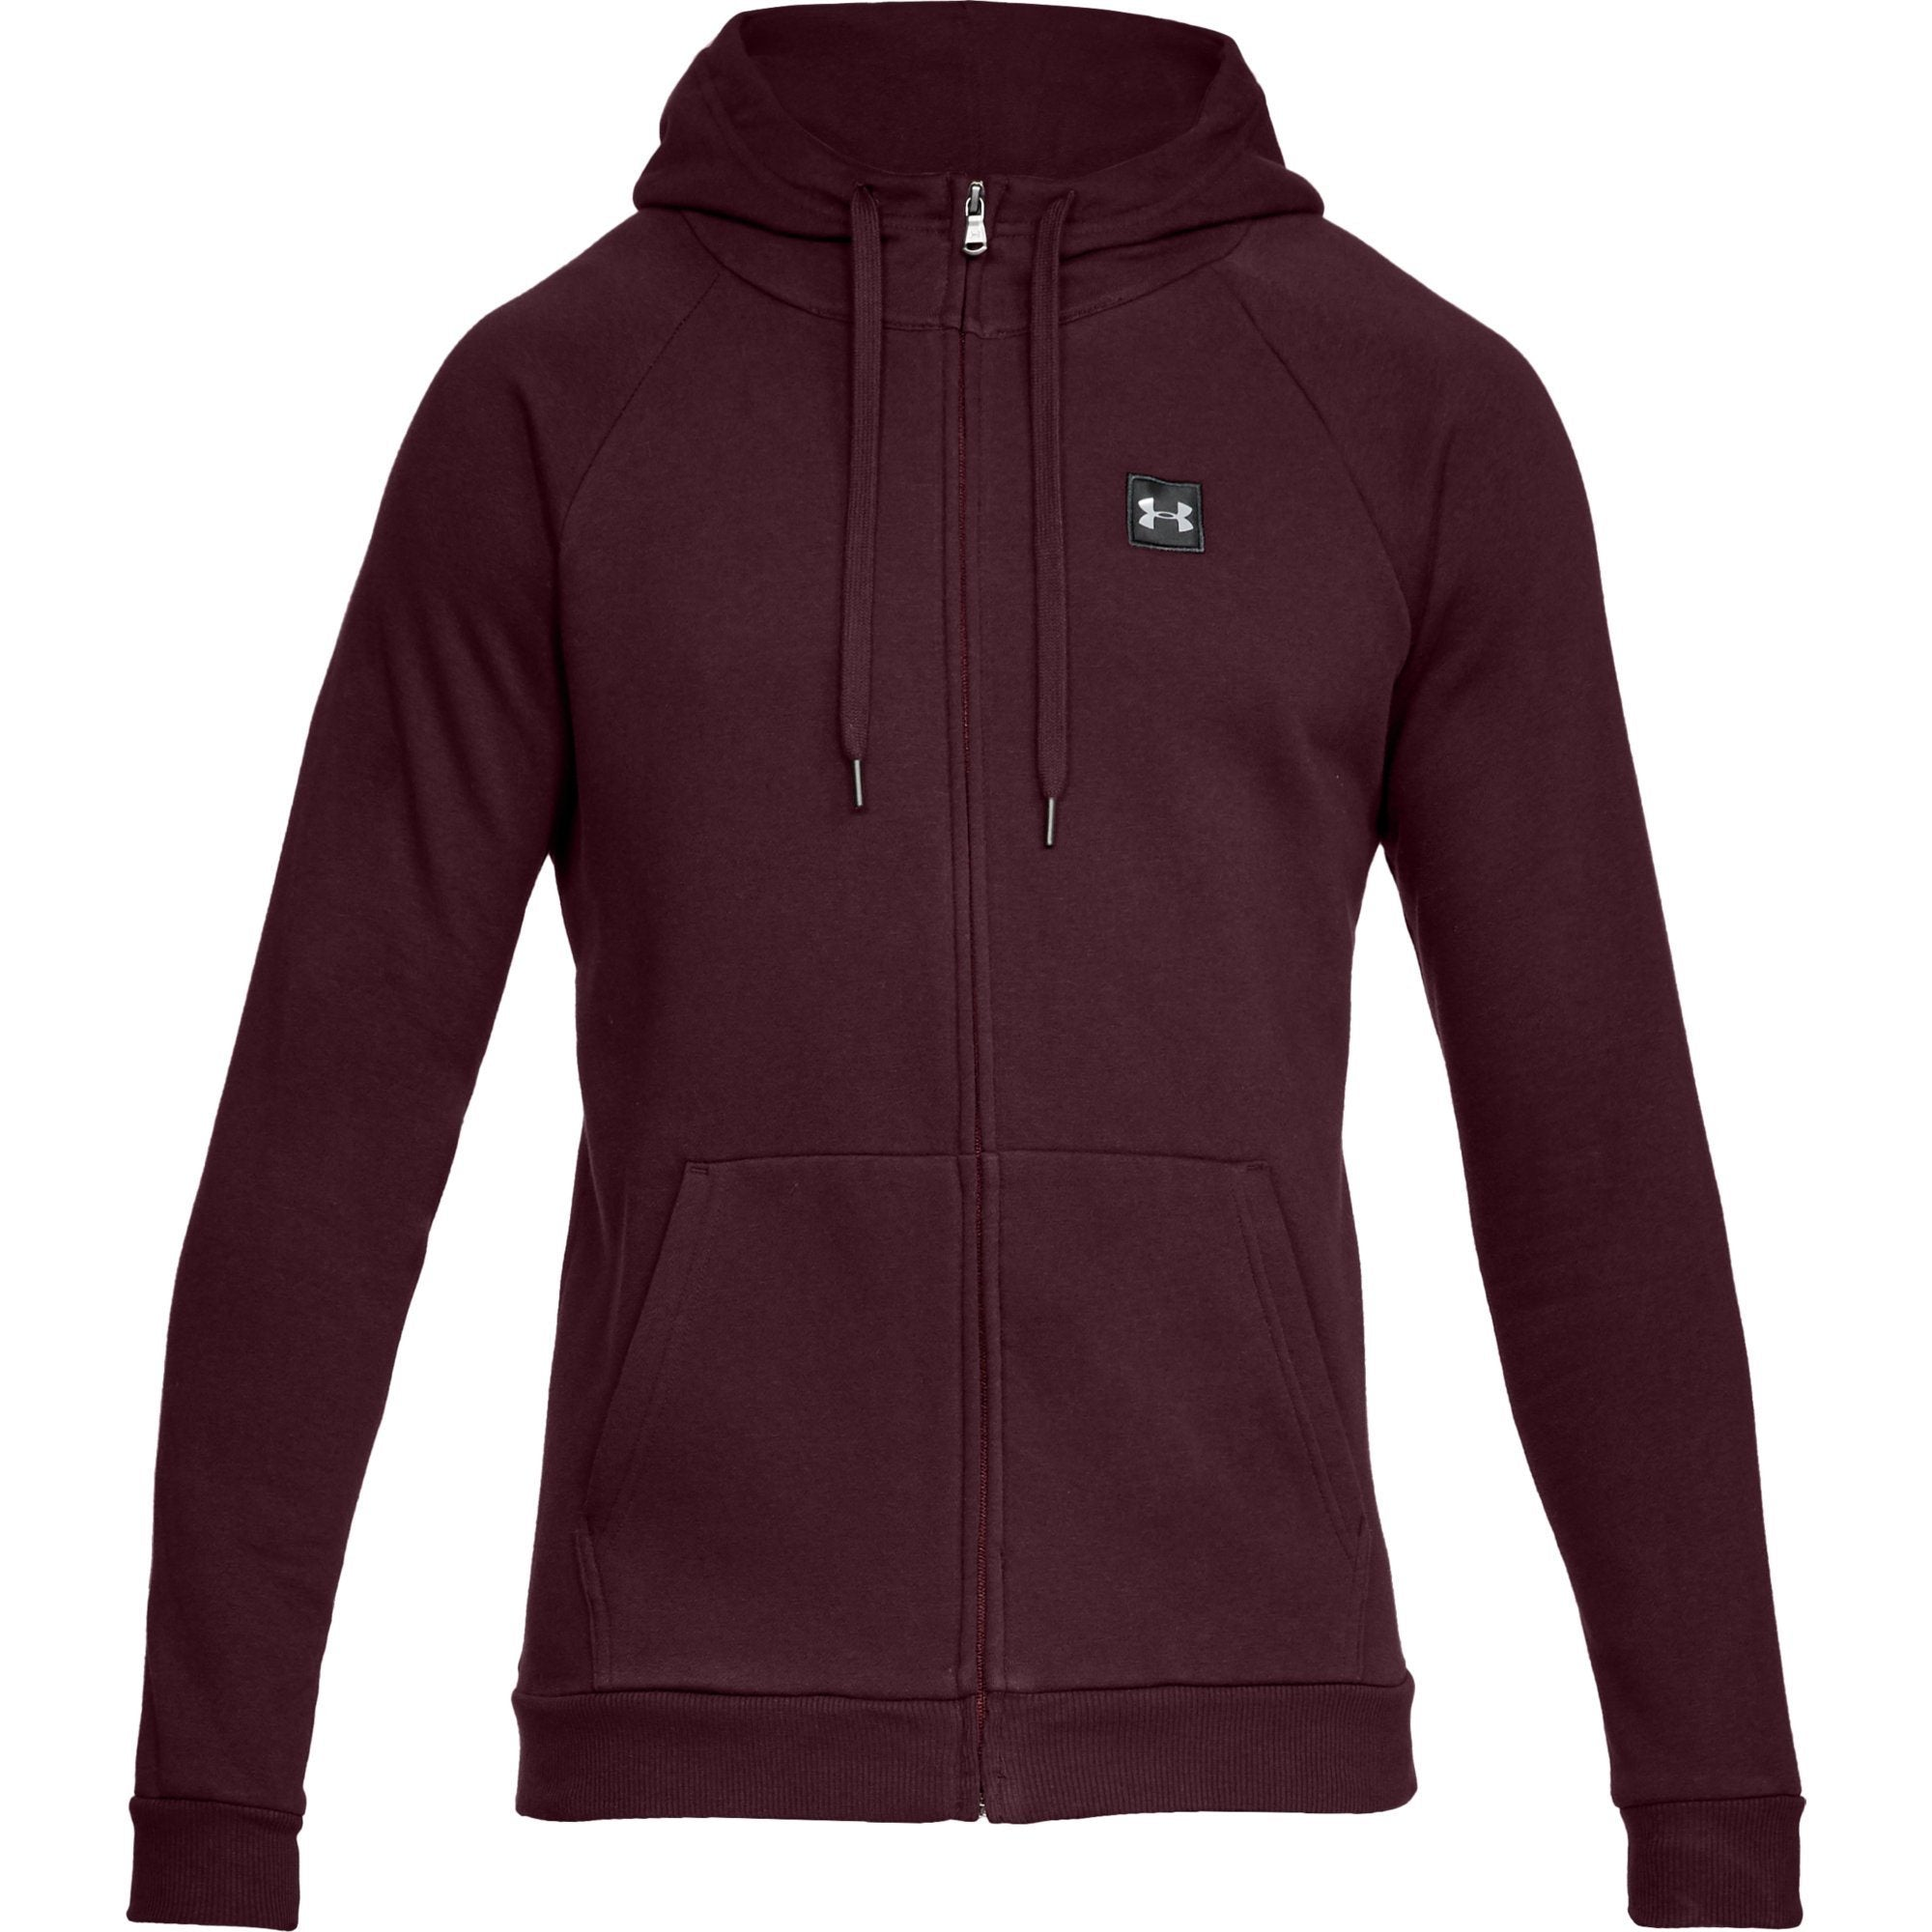 Under Armour Rival Fleece FZ Hoody - Red